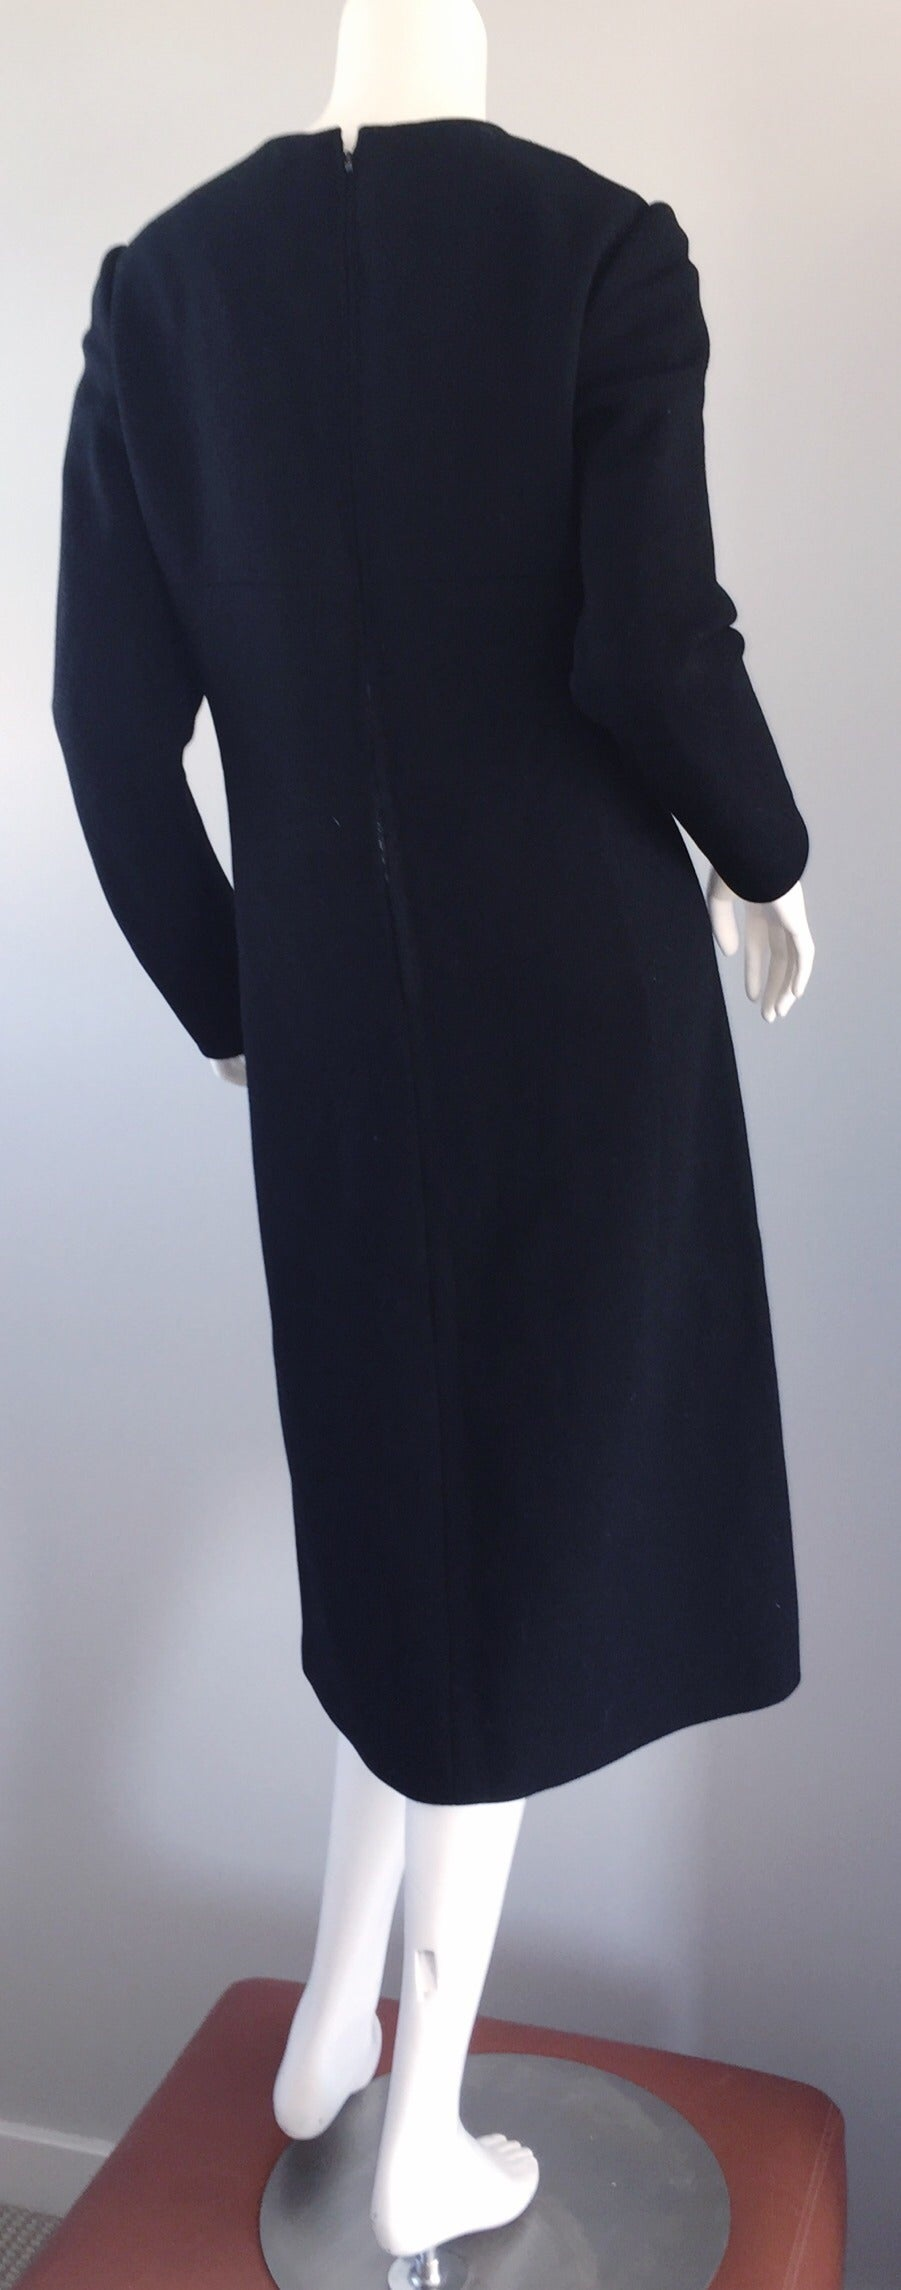 Iconic Vintage Pierre Cardin 1960s 60s Black Wool Cut - Out Dress w/ Bow For Sale 2